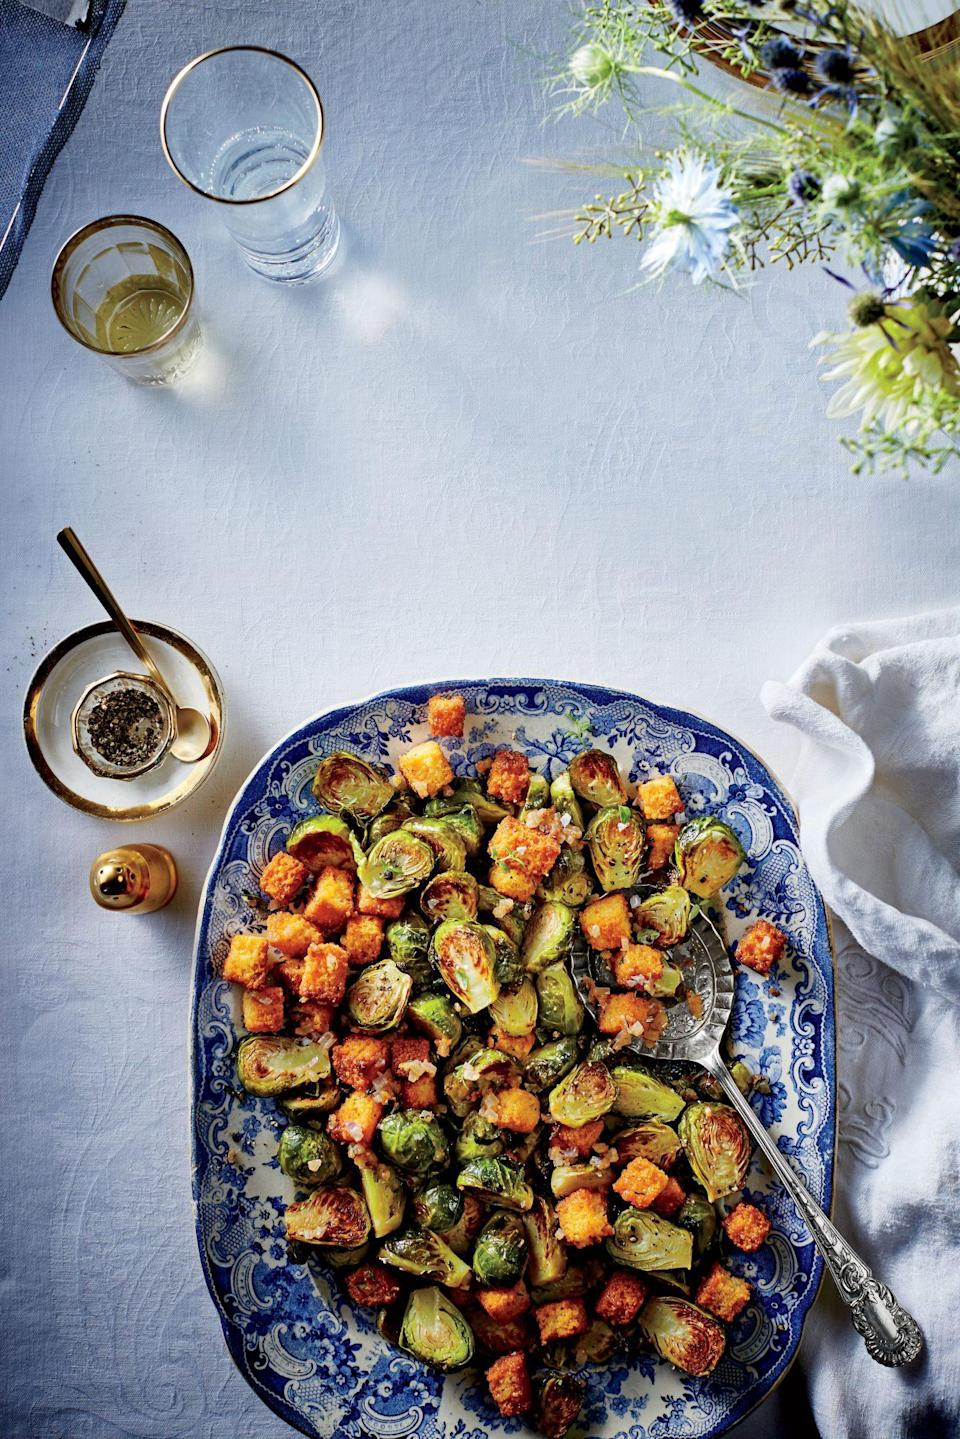 """<p><b>Recipe: </b><a href=""""https://www.southernliving.com/recipes/brussels-sprouts-cornbread-croutons"""" rel=""""nofollow noopener"""" target=""""_blank"""" data-ylk=""""slk:Brussels Sprouts with Cornbread Croutons"""" class=""""link rapid-noclick-resp"""">Brussels Sprouts with Cornbread Croutons</a></p> <p>When cooking Brussels sprouts, you can use your nose as a guide, just make sure you're not too late. If they have a strong smell they've been overcooked. </p>"""